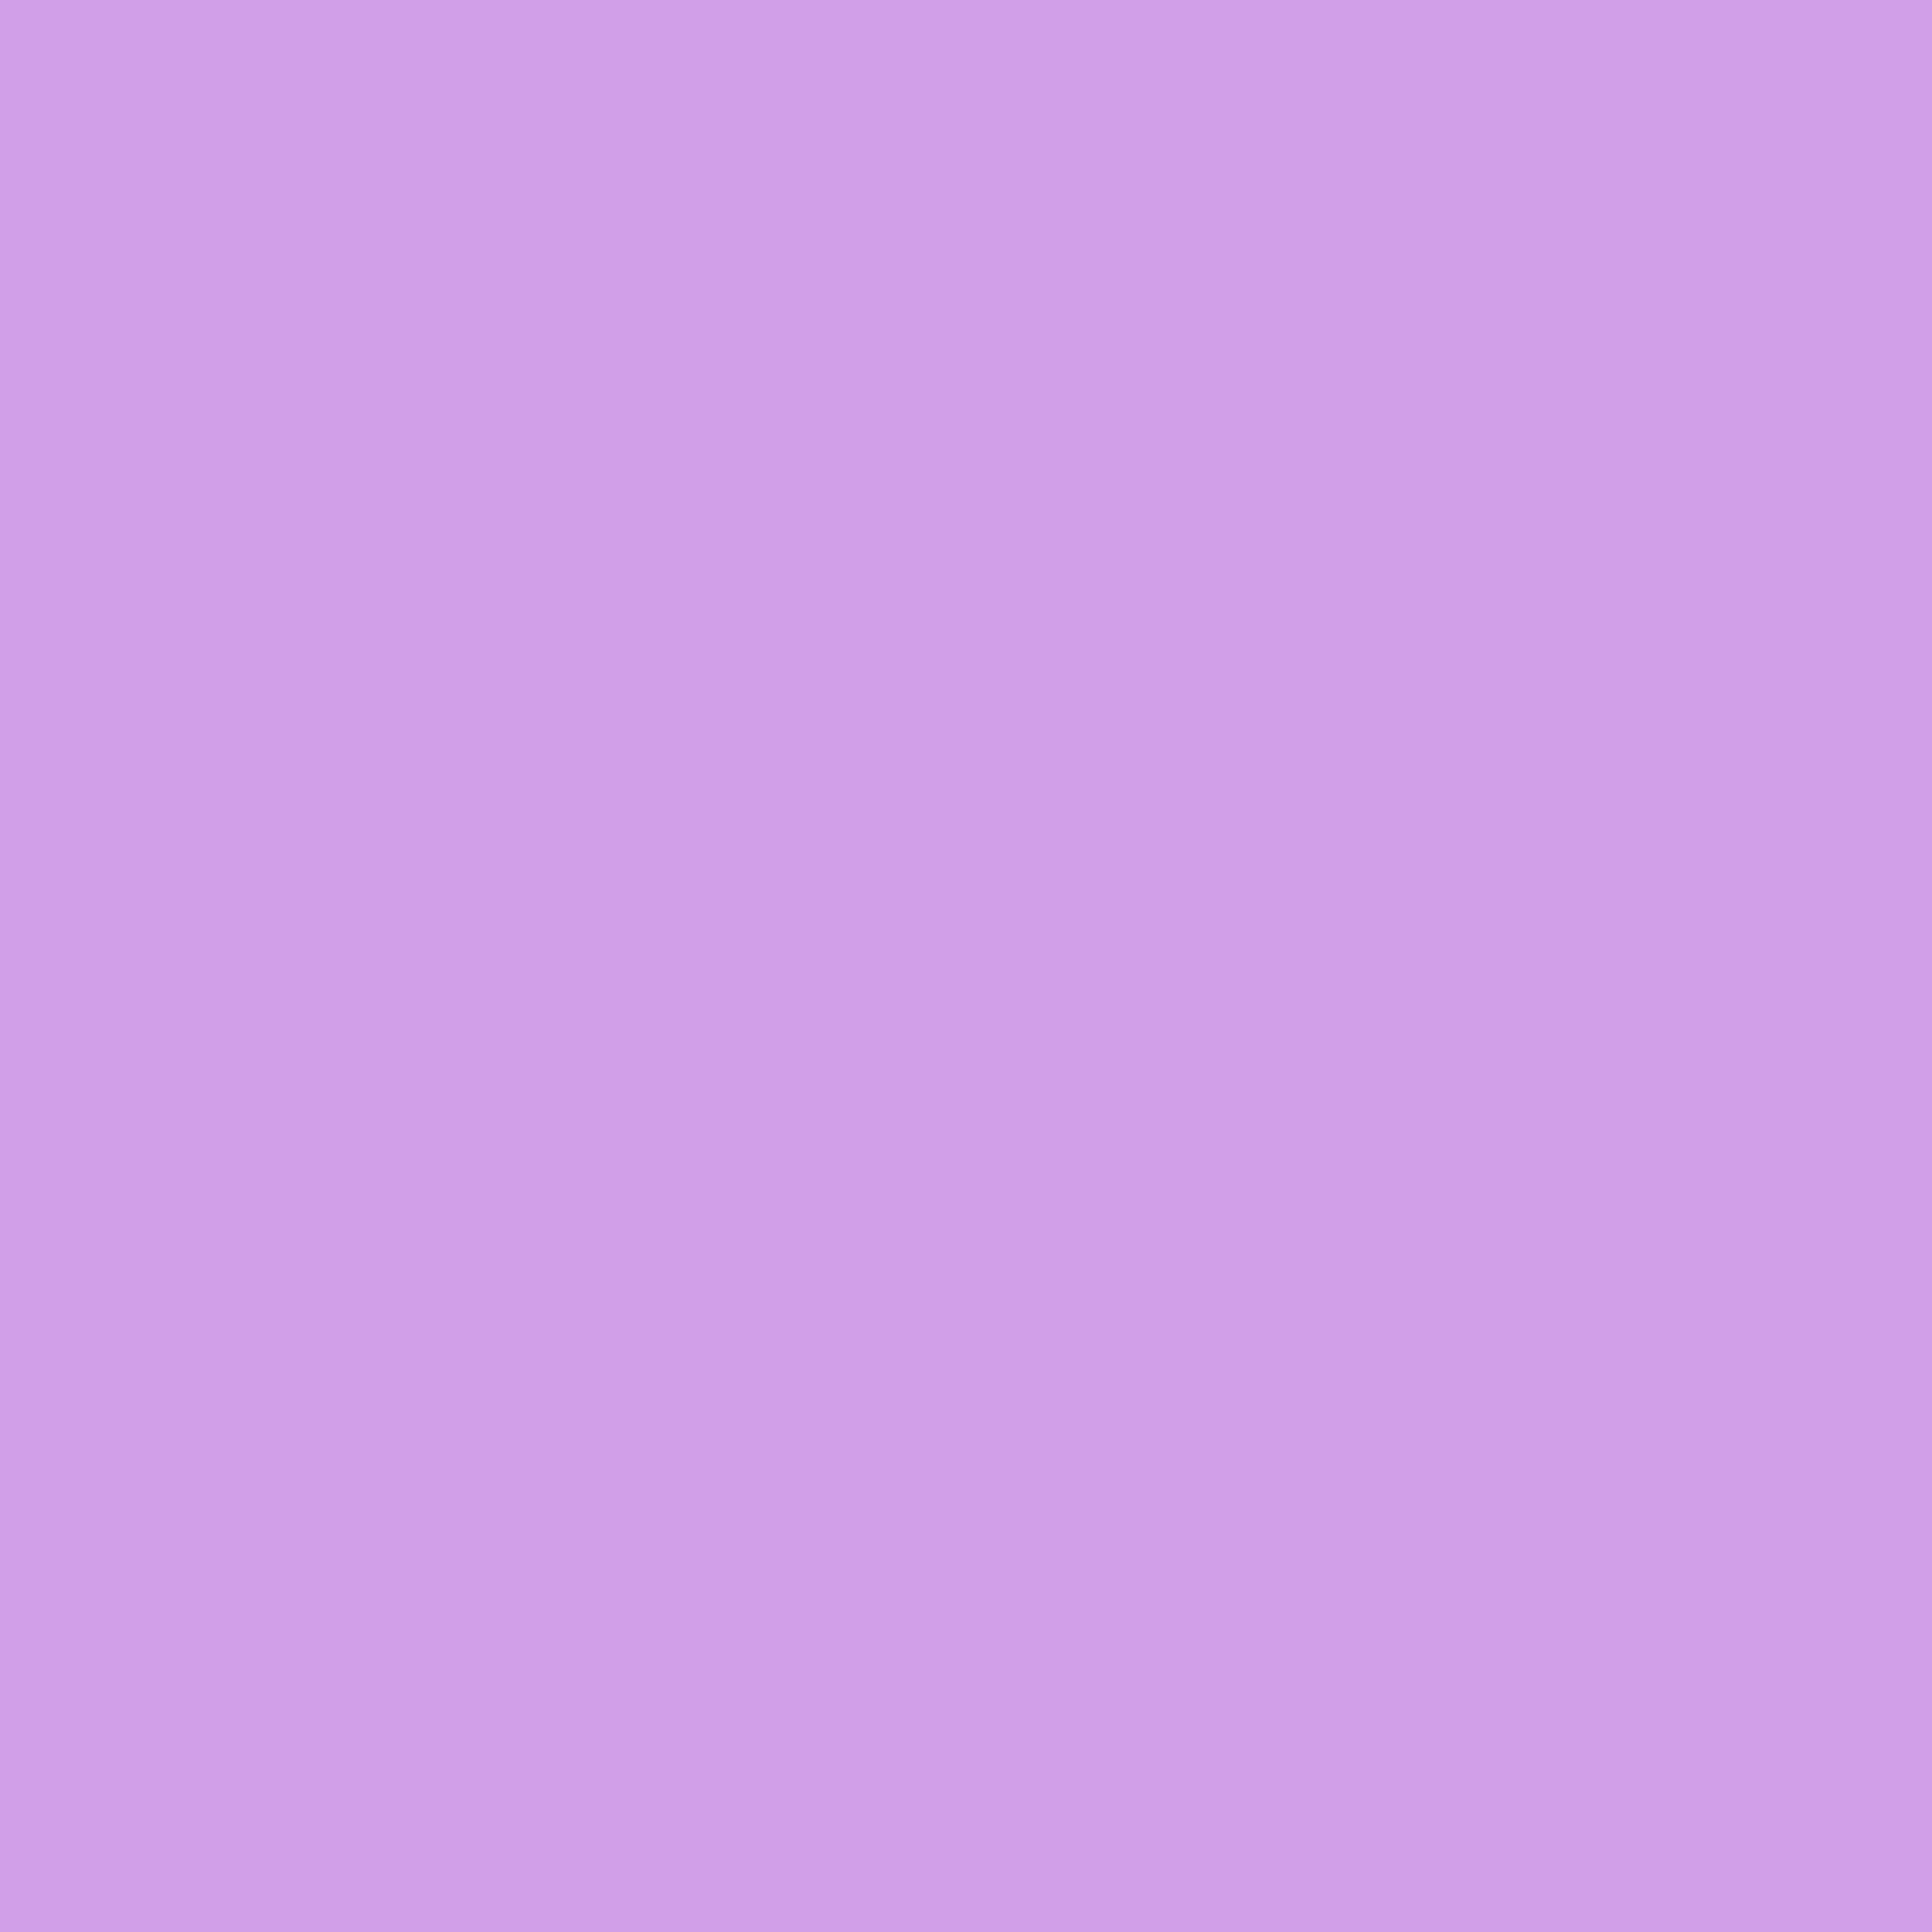 2048x2048 Bright Ube Solid Color Background